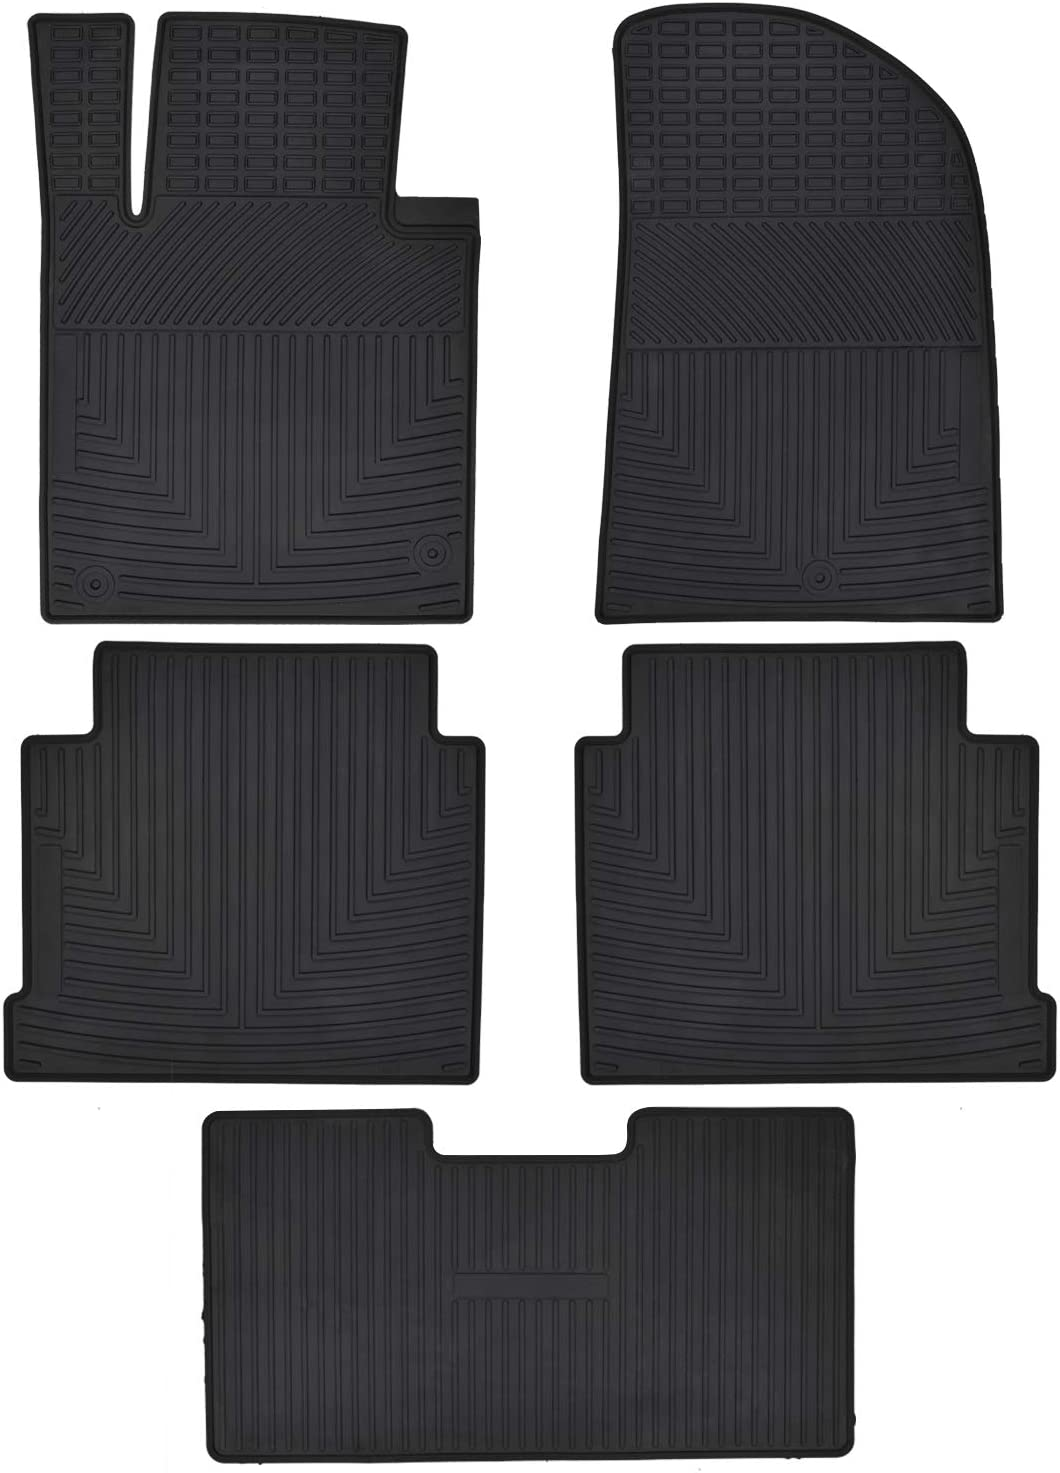 Megiteller Car Floor Mats Custom Fit for Hyundai Sonata 2015 2016 2017 2018 2019//2016-2020 Kia Optima Odorless Washable Heavy Duty Rubber Floor Liners Front and Rear Row Set Black All Weather